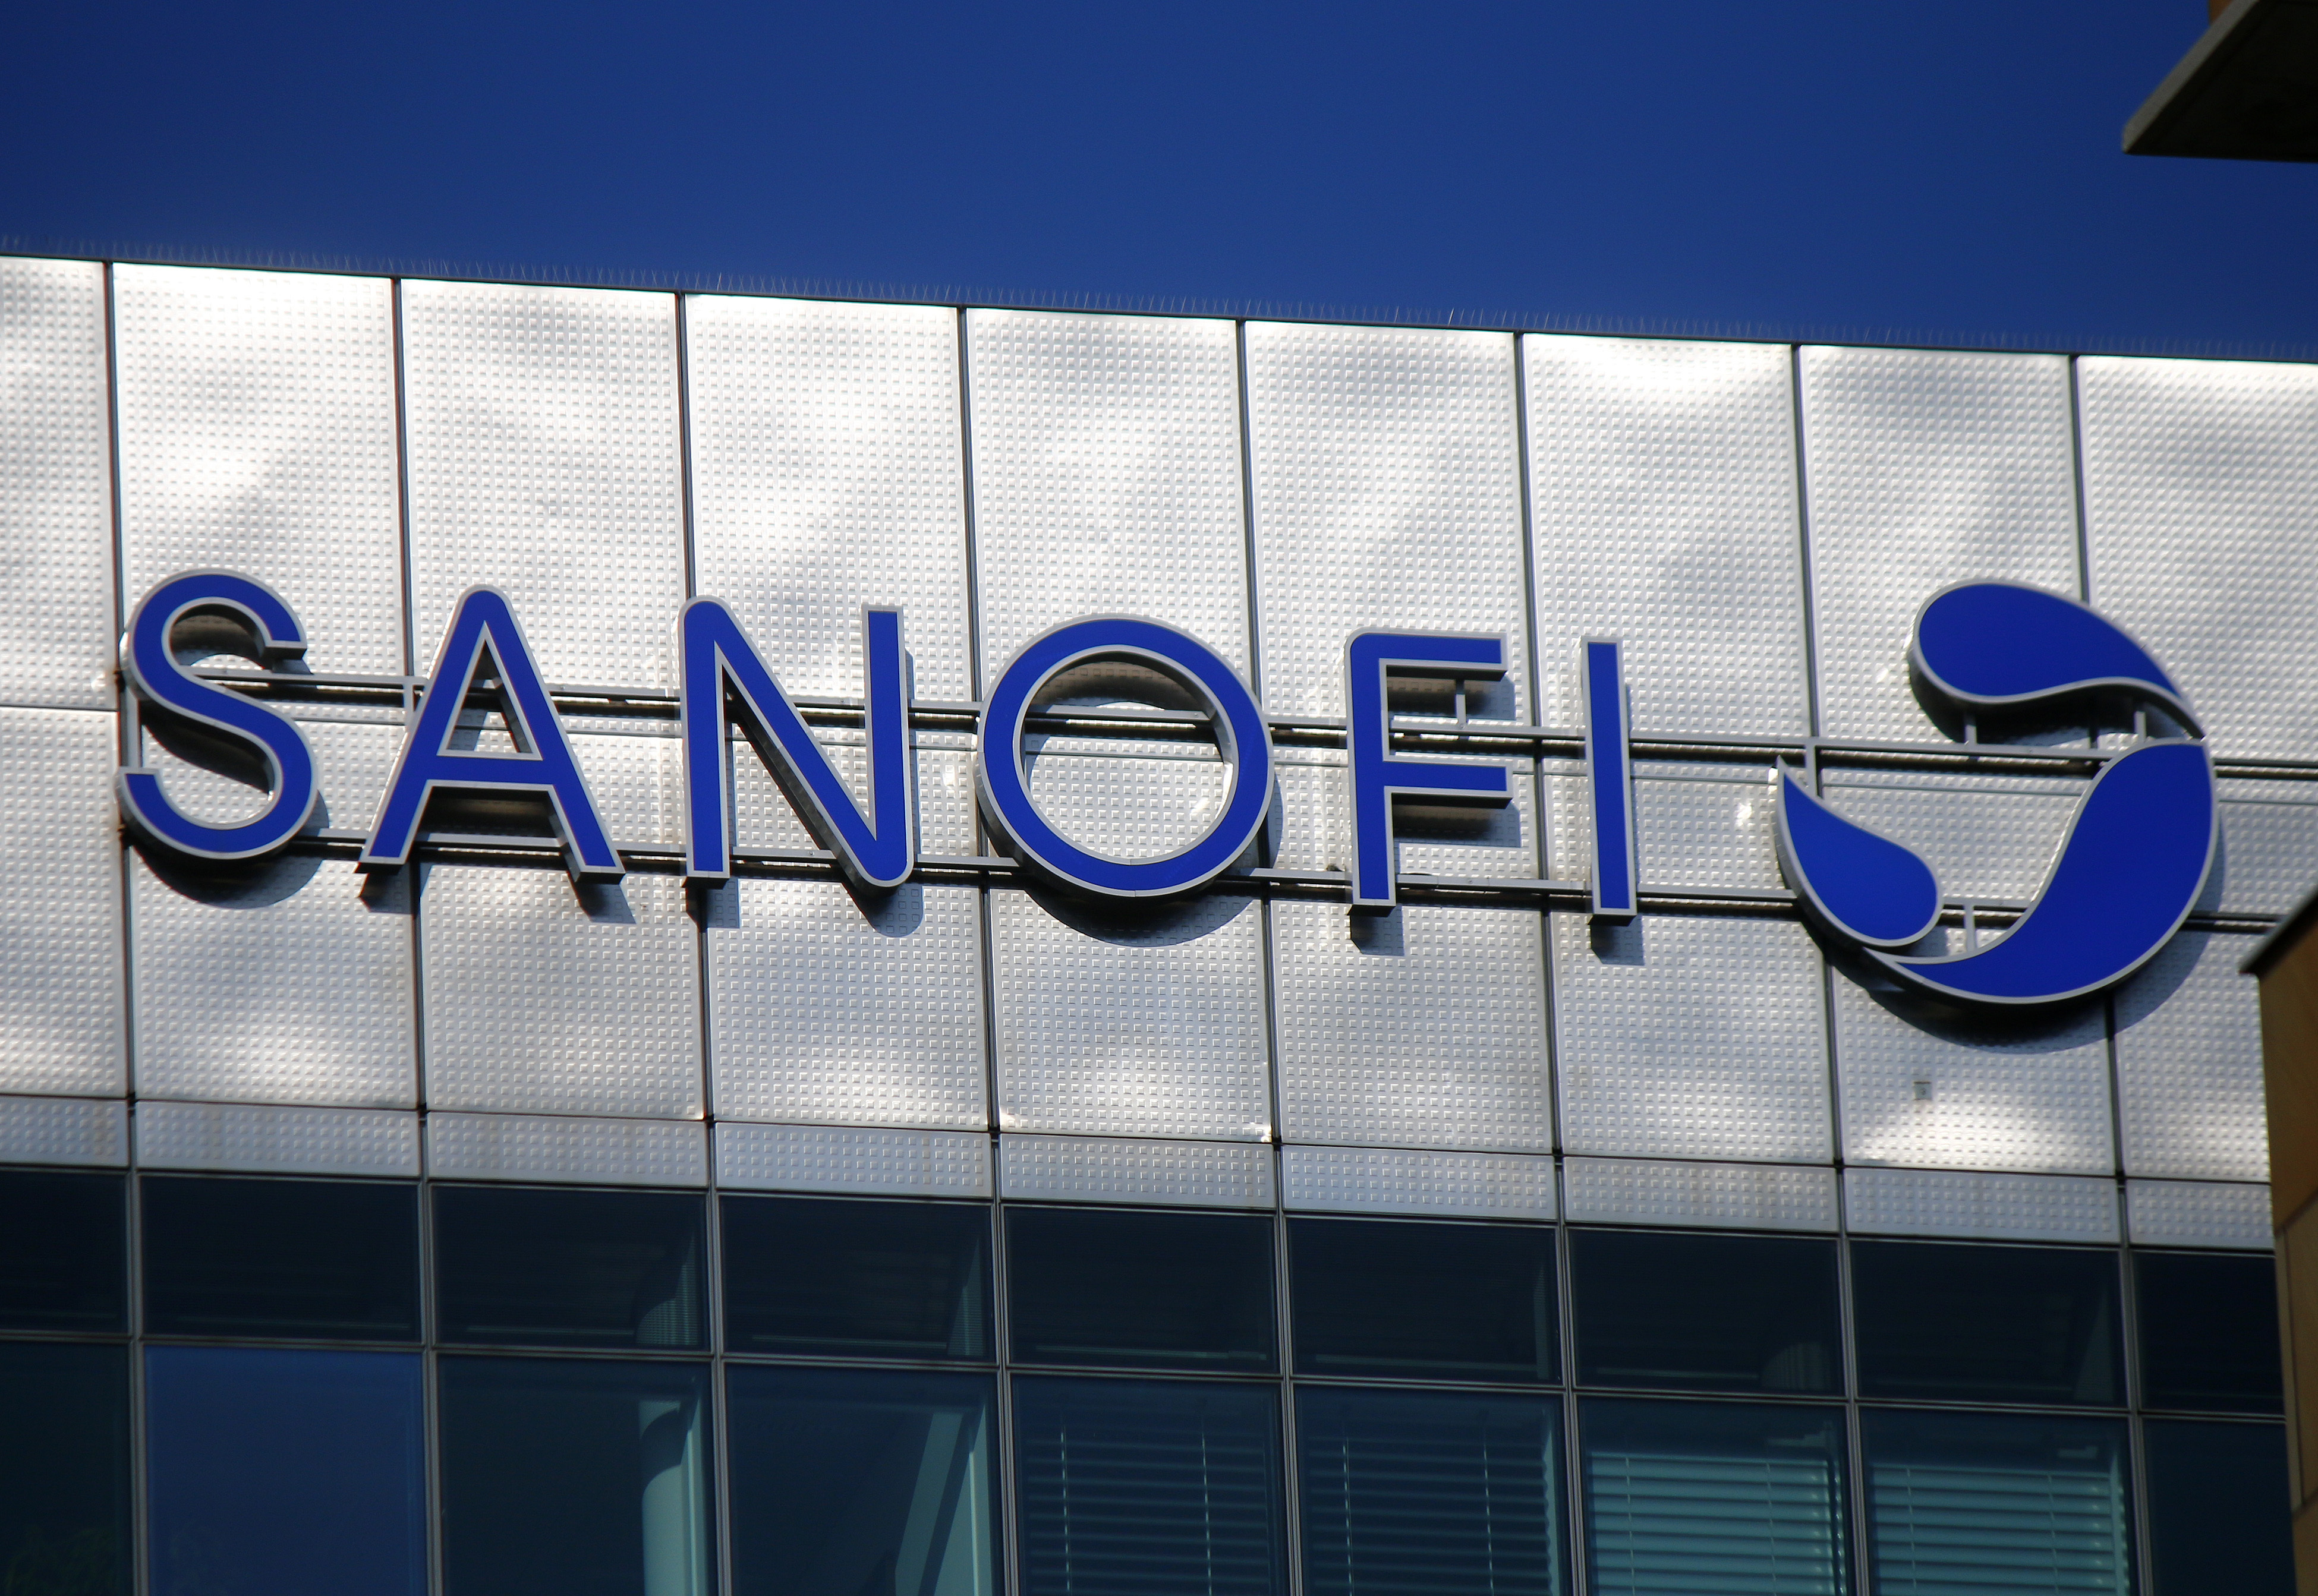 Sanofi's Phase 2 Clinical Trial on SAR156597 for Idiopathic Pulmonary Fibrosis Treatment Currently Recruiting Participants